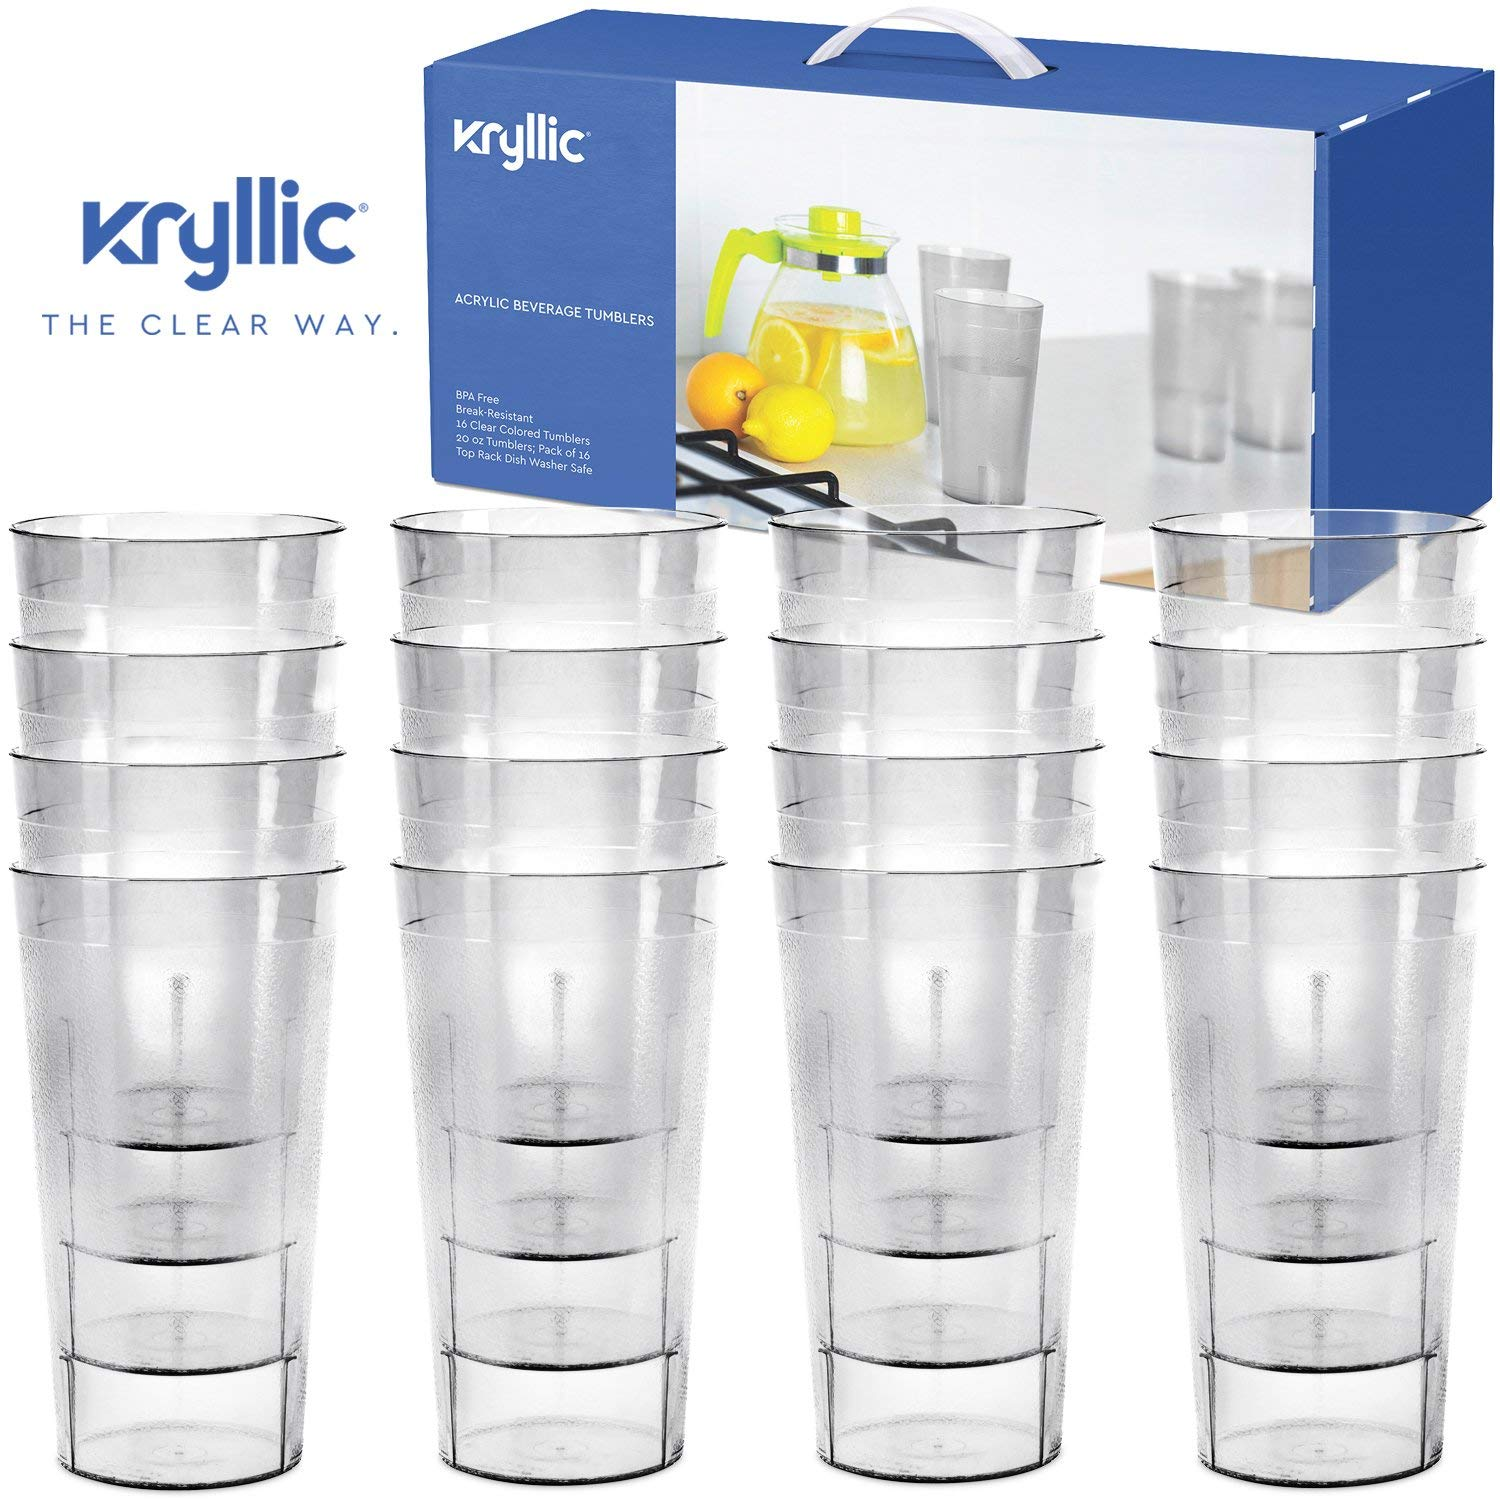 Reusable Plastic Cup Drinkware Tumblers 16 Clear break resistant 20 oz dishwasher safe drinking stacking water... by Kryllic